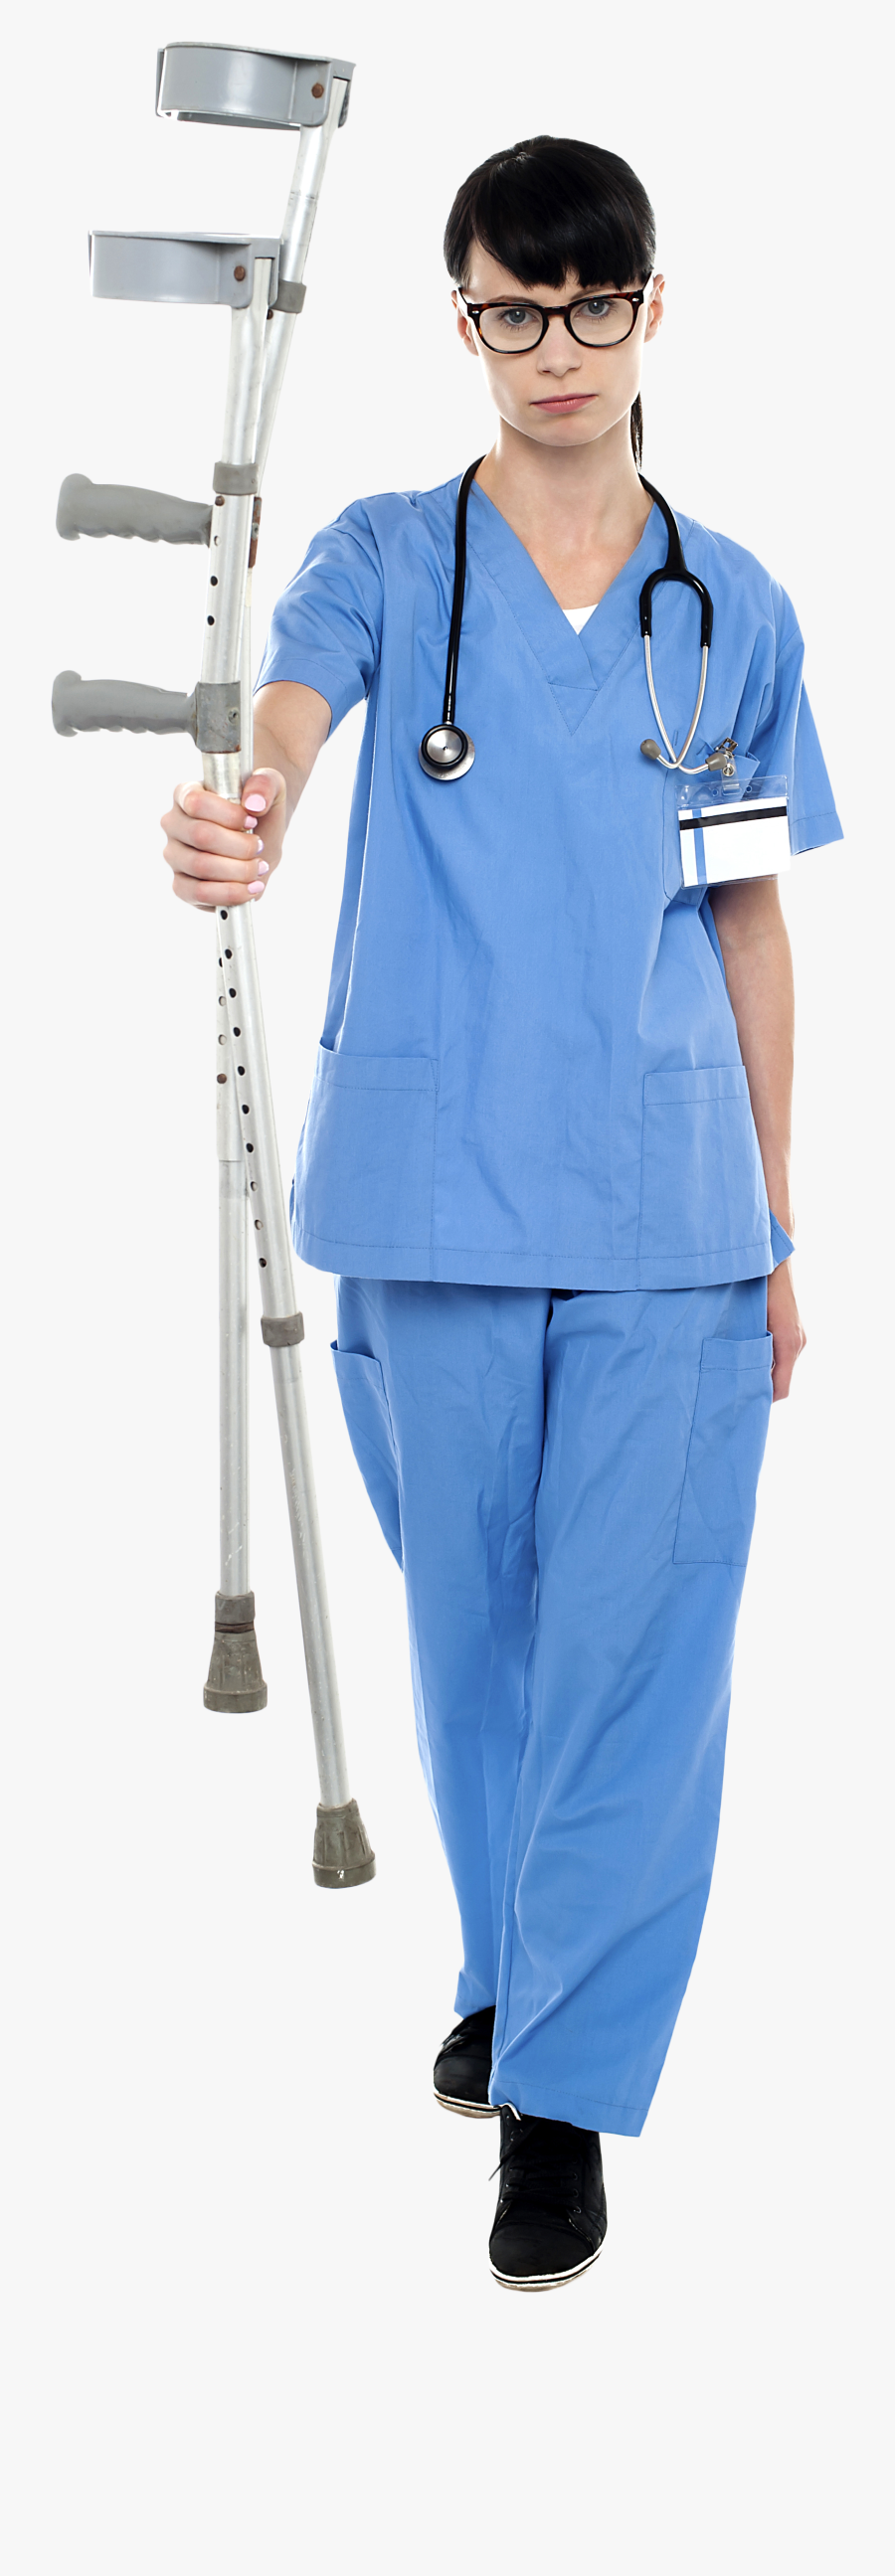 Female Doctor Png Image - Physician, Transparent Clipart